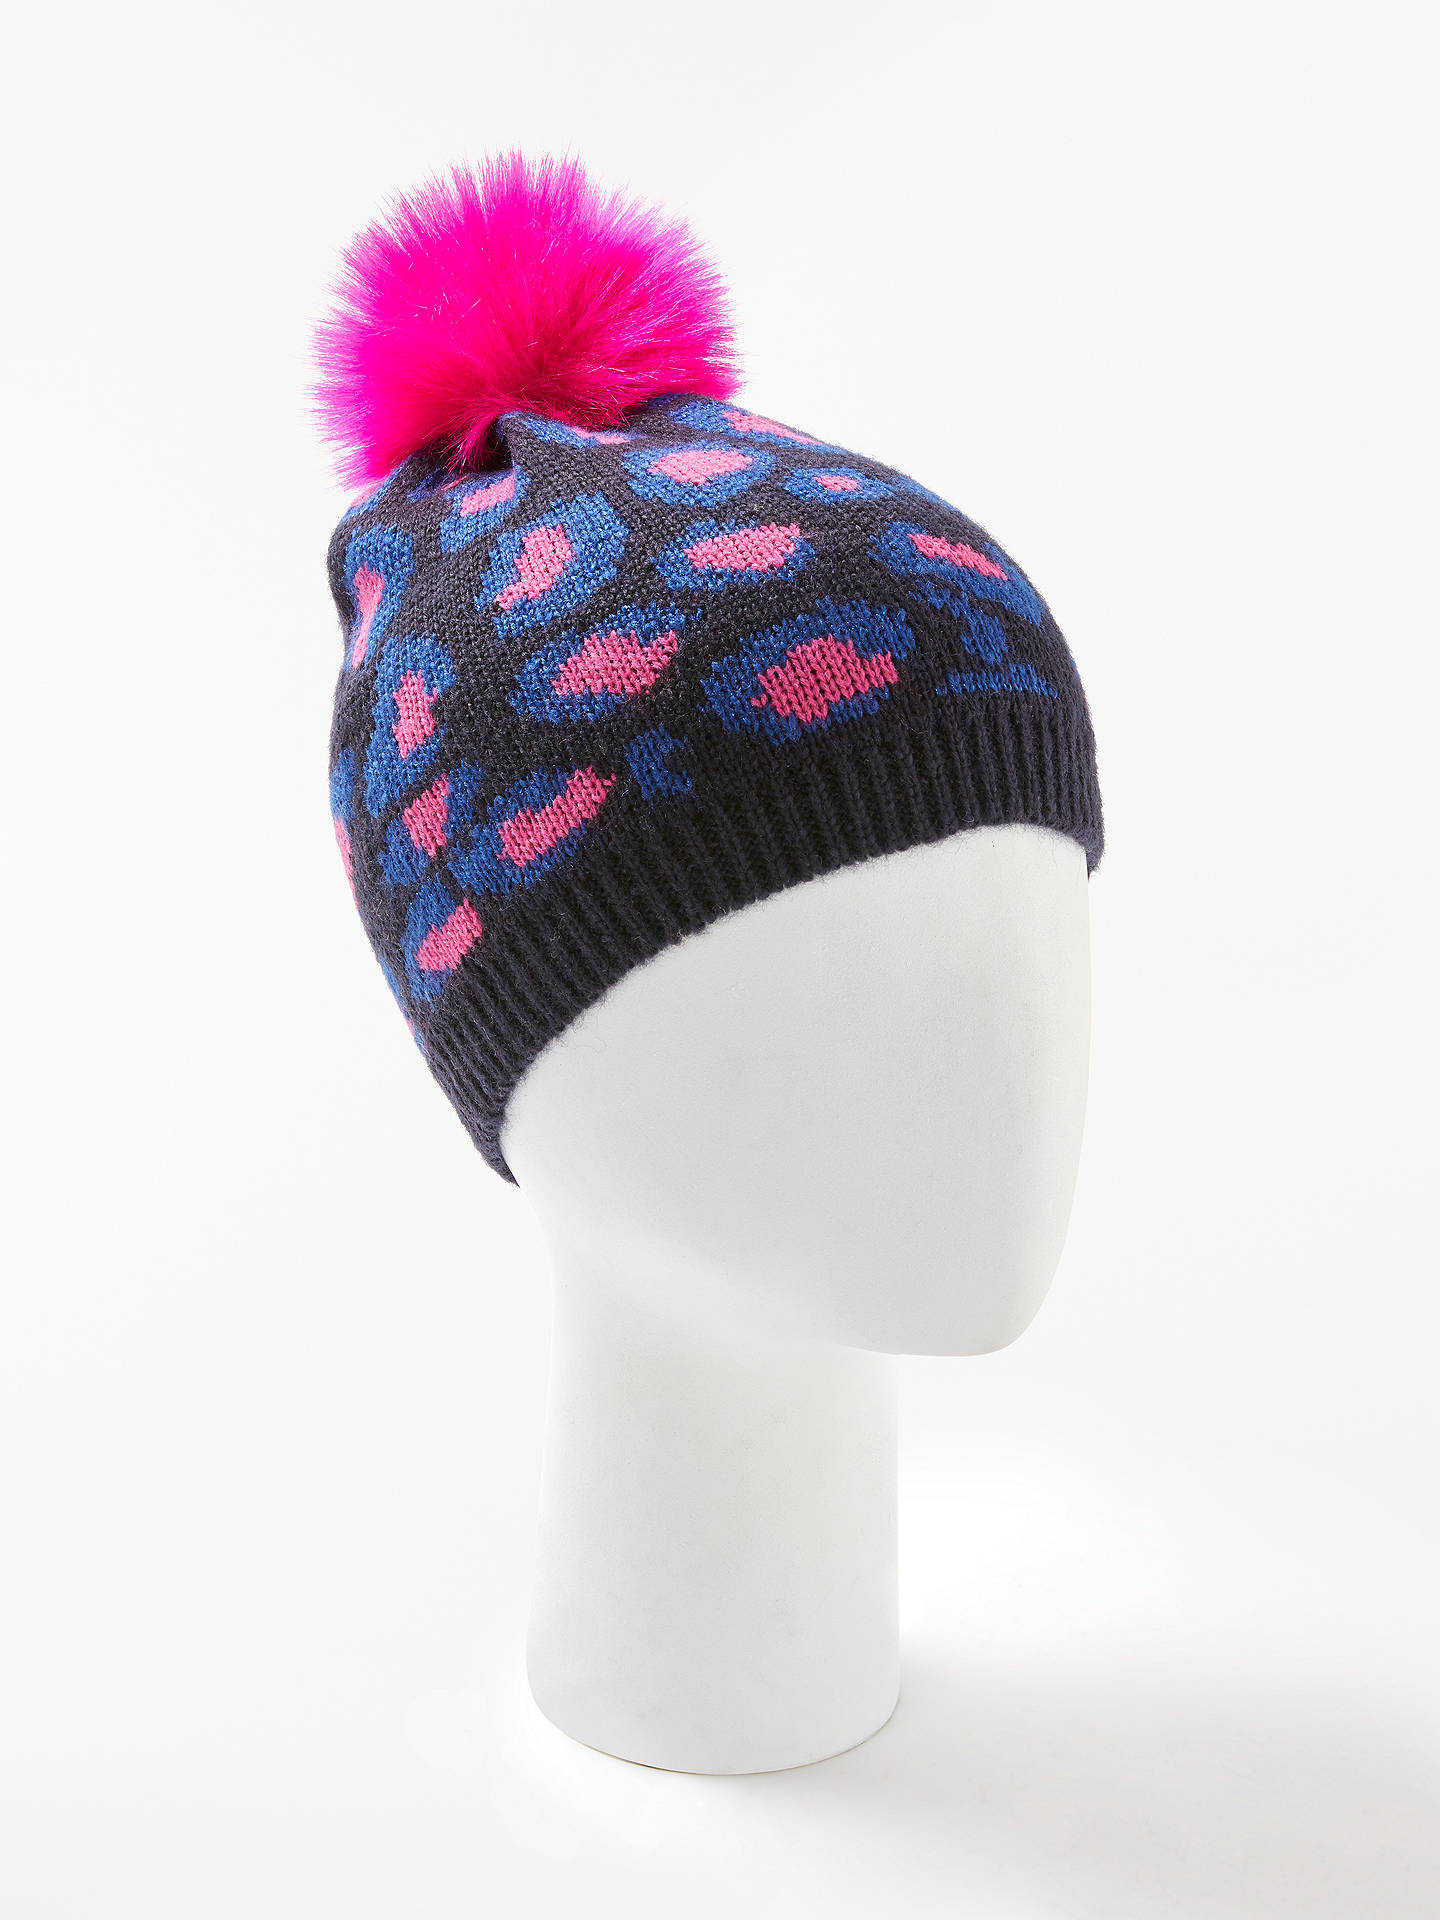 on sale e9dae 72e24 ... Buy Collection WEEKEND by John Lewis Leopard Print Fluffy Pom Beanie Hat,  Navy Multi ...